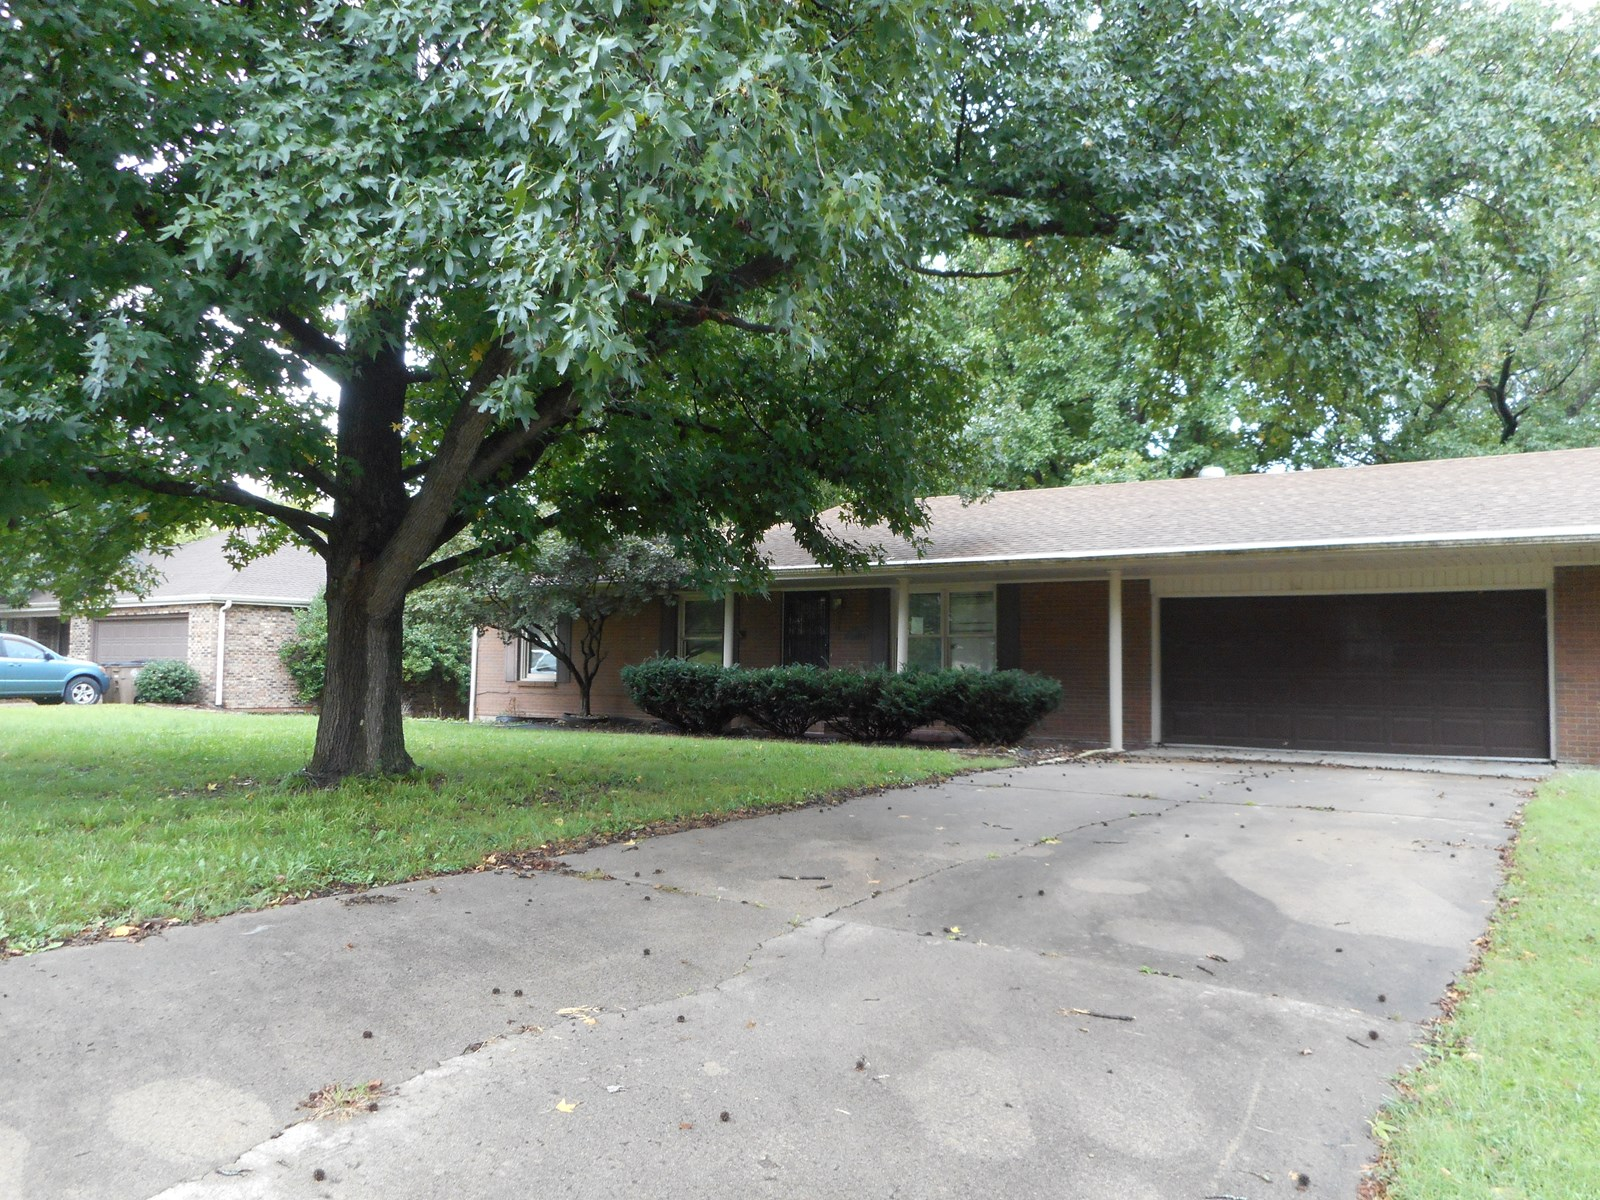 Home For Sale in Cape Girardeau, Missouri